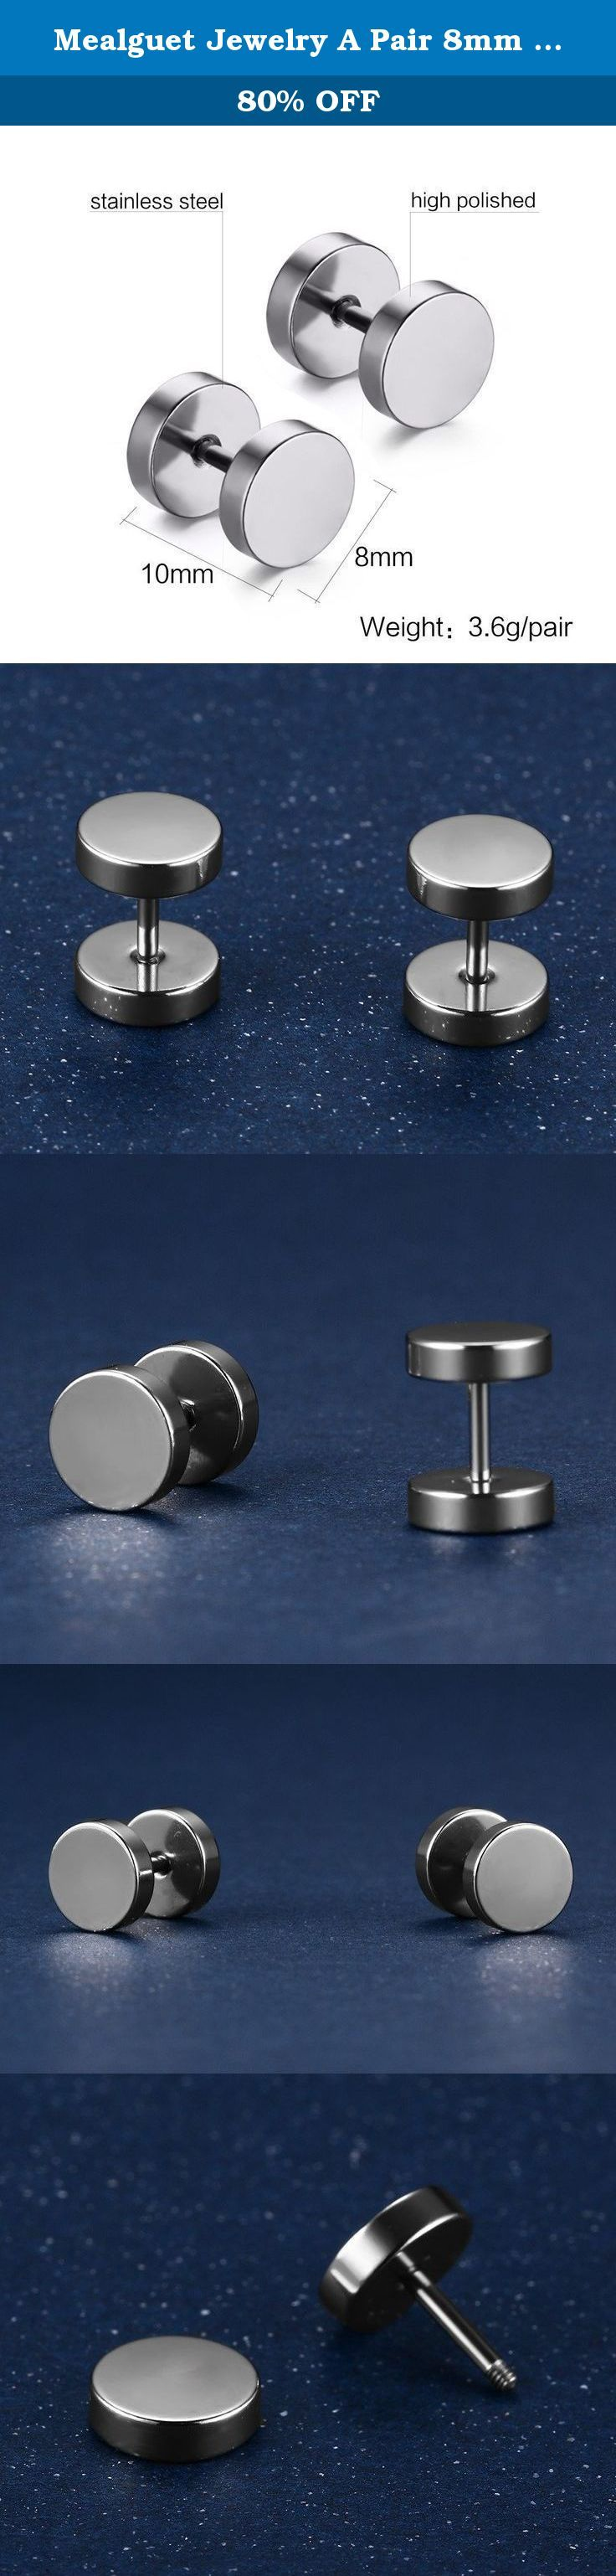 Mealguet Jewelry A Pair 8mm Men's Stud Earring Illusion Tunnel Plug Screw Back in Stainless Steel, Silver. Mealguet Jewelry 6 Pairs 8mm Men's Stud Earring Illusion Tunnel Plug Screw Back in Stainless Steel, 5 Colors Why I need a Stainless Steel Jewelry? Stainless Steel jewelry does not tarnish and oxidize, It not like silver will be getting black, not like copper jewelry allergy prone, not as alloy jewelry because of lead. And it is amazingly hypoallergenic. Such advantages make it a more...